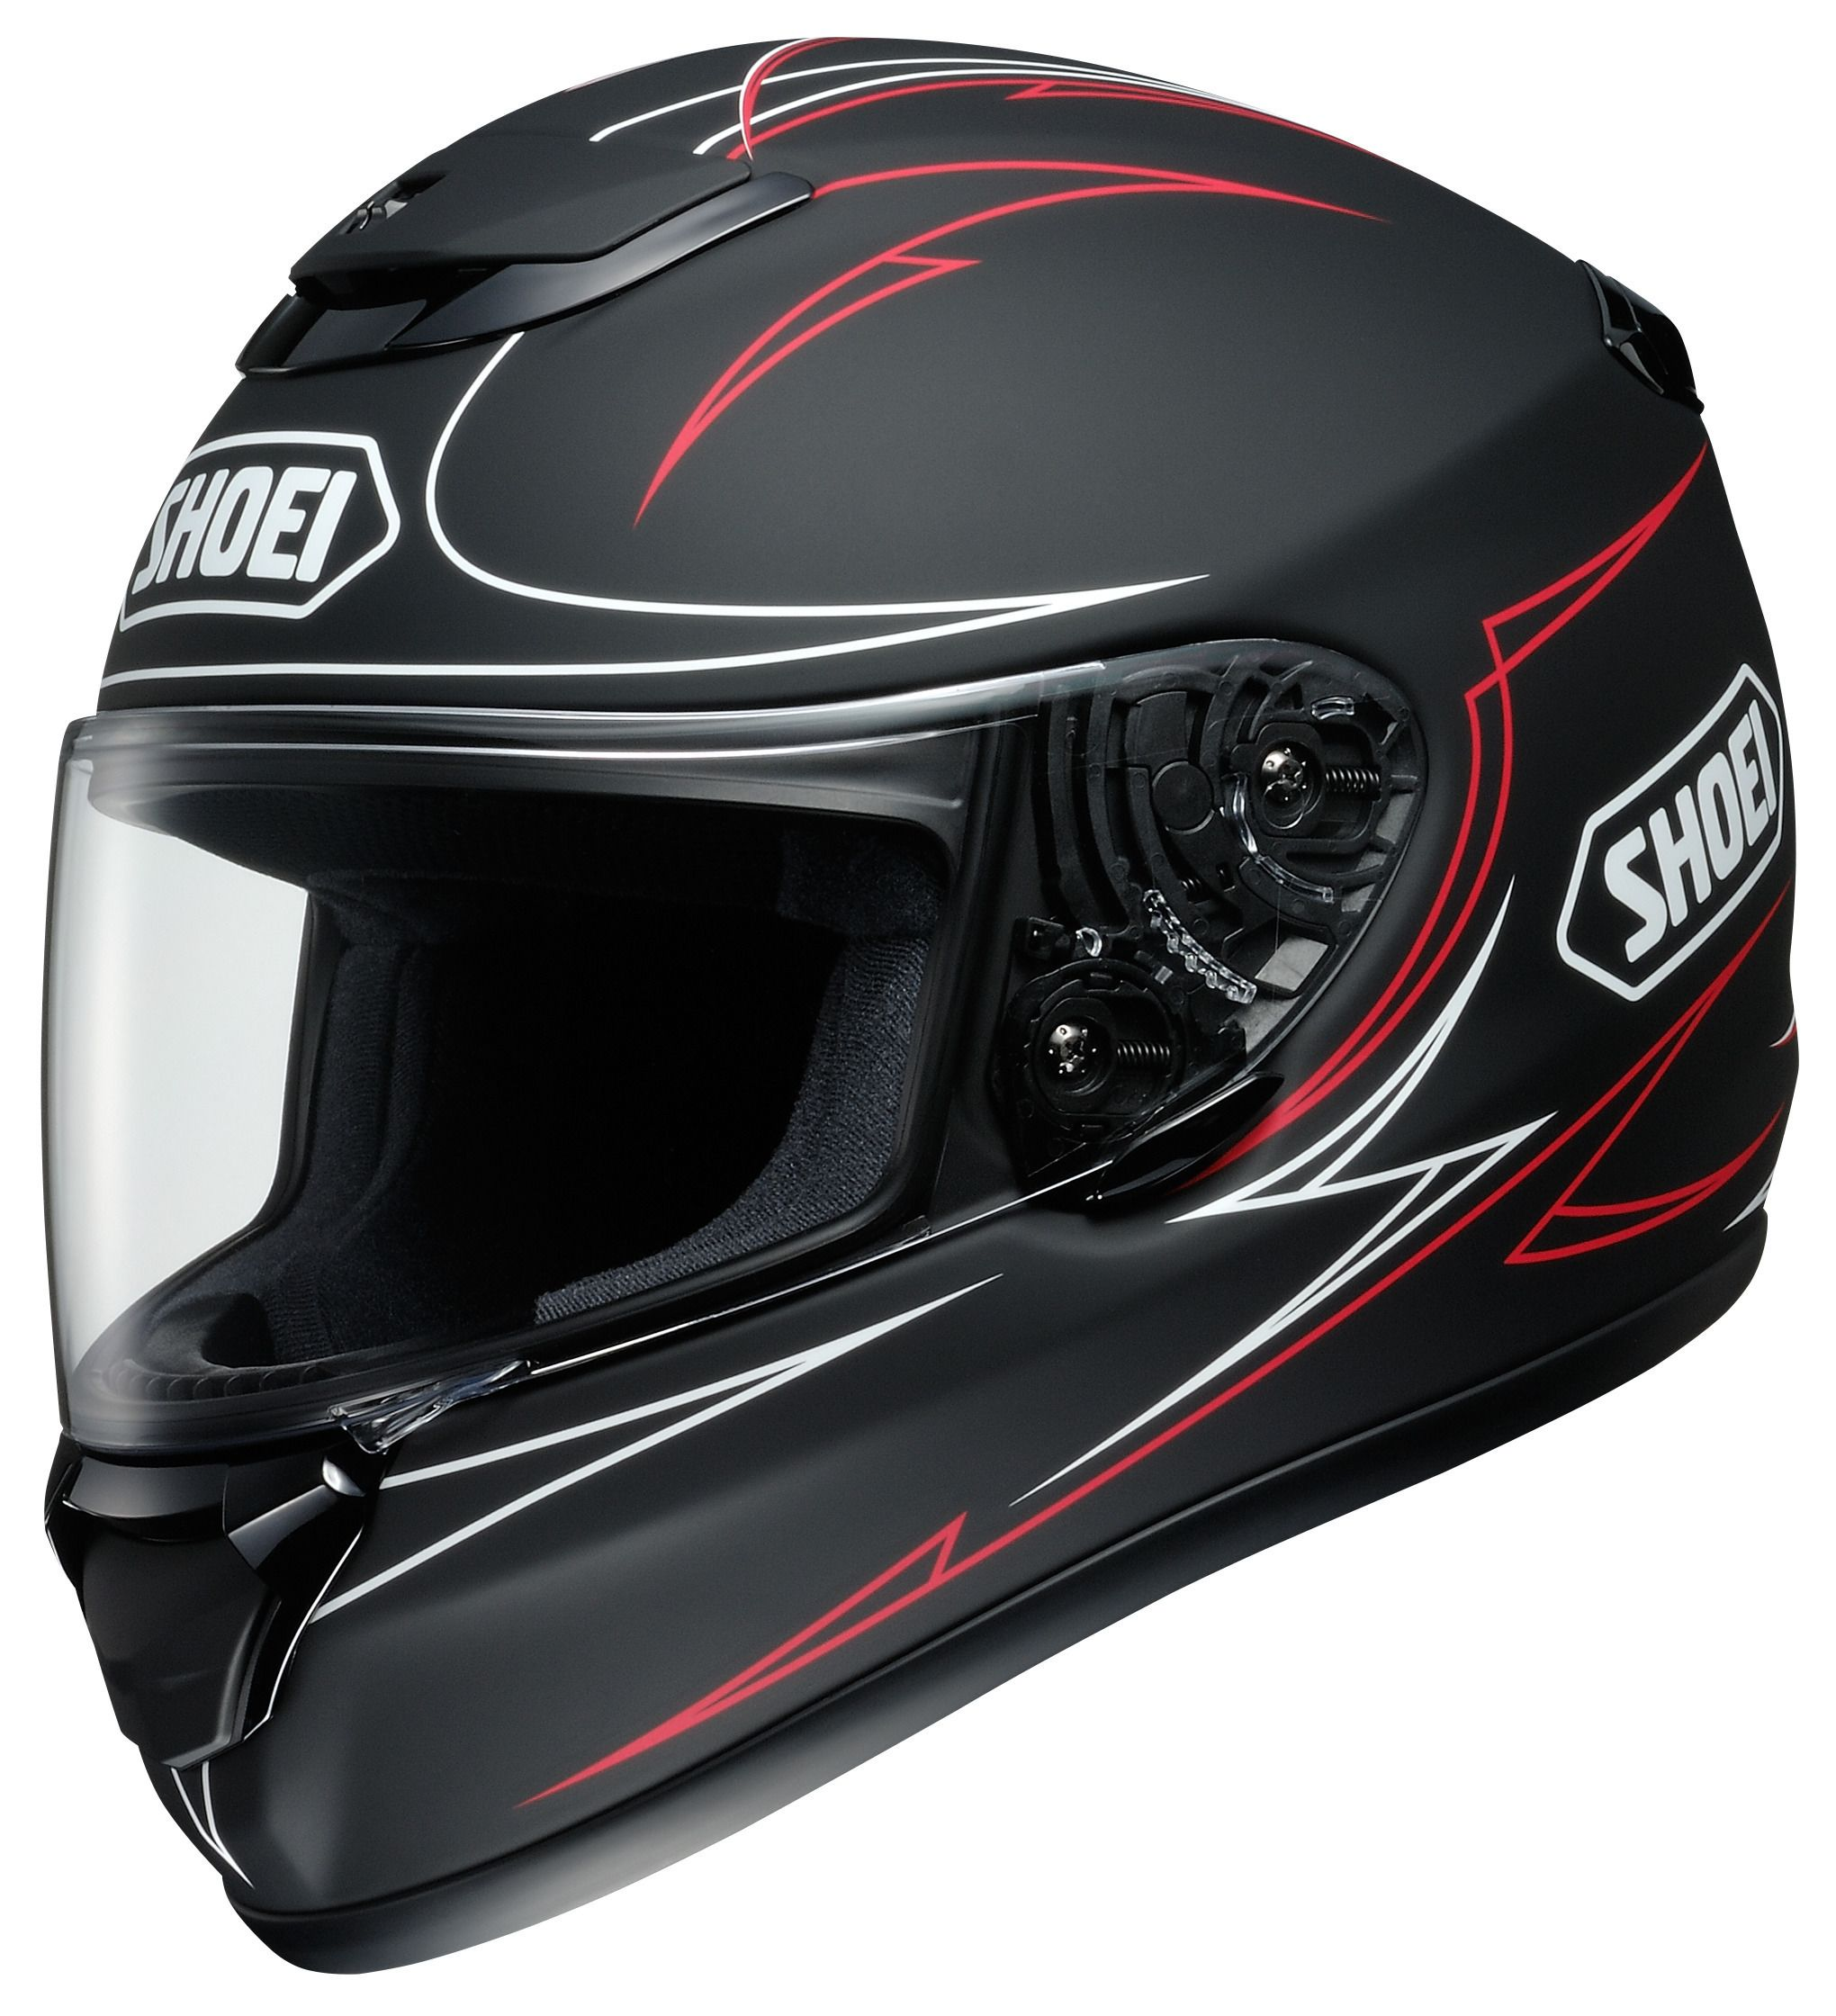 Shoei Touring Helmet